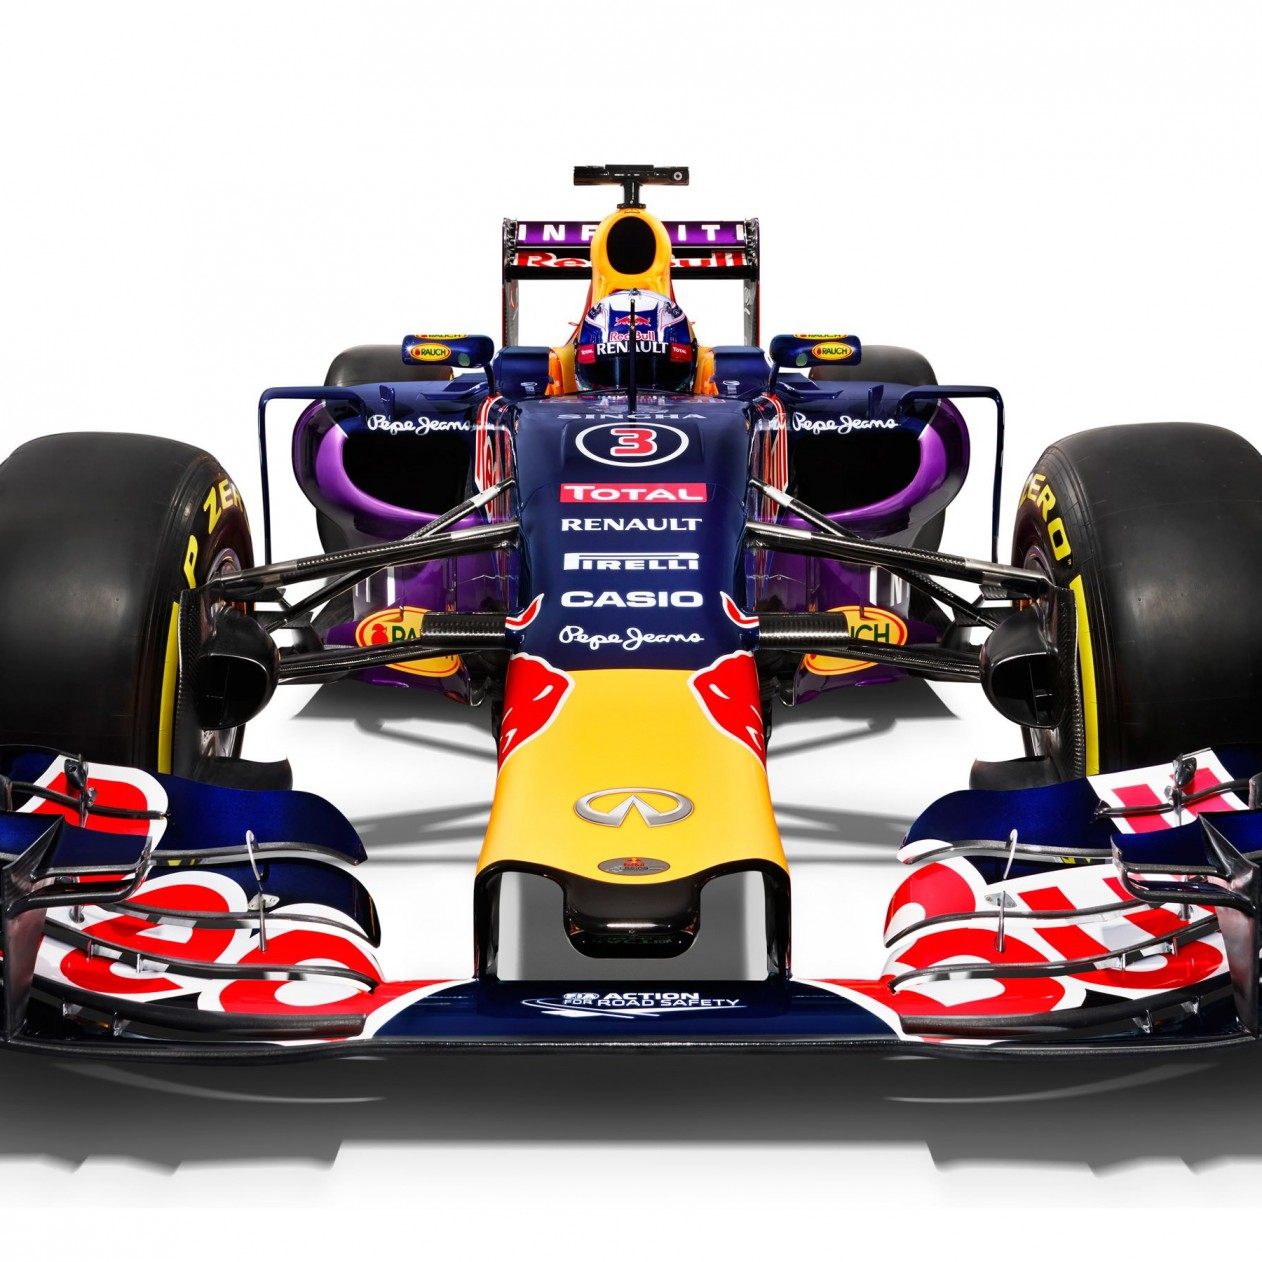 Infiniti Red Bull Racing RB11 2015 Formula 1 Car Wallpaper for Apple iPad mini